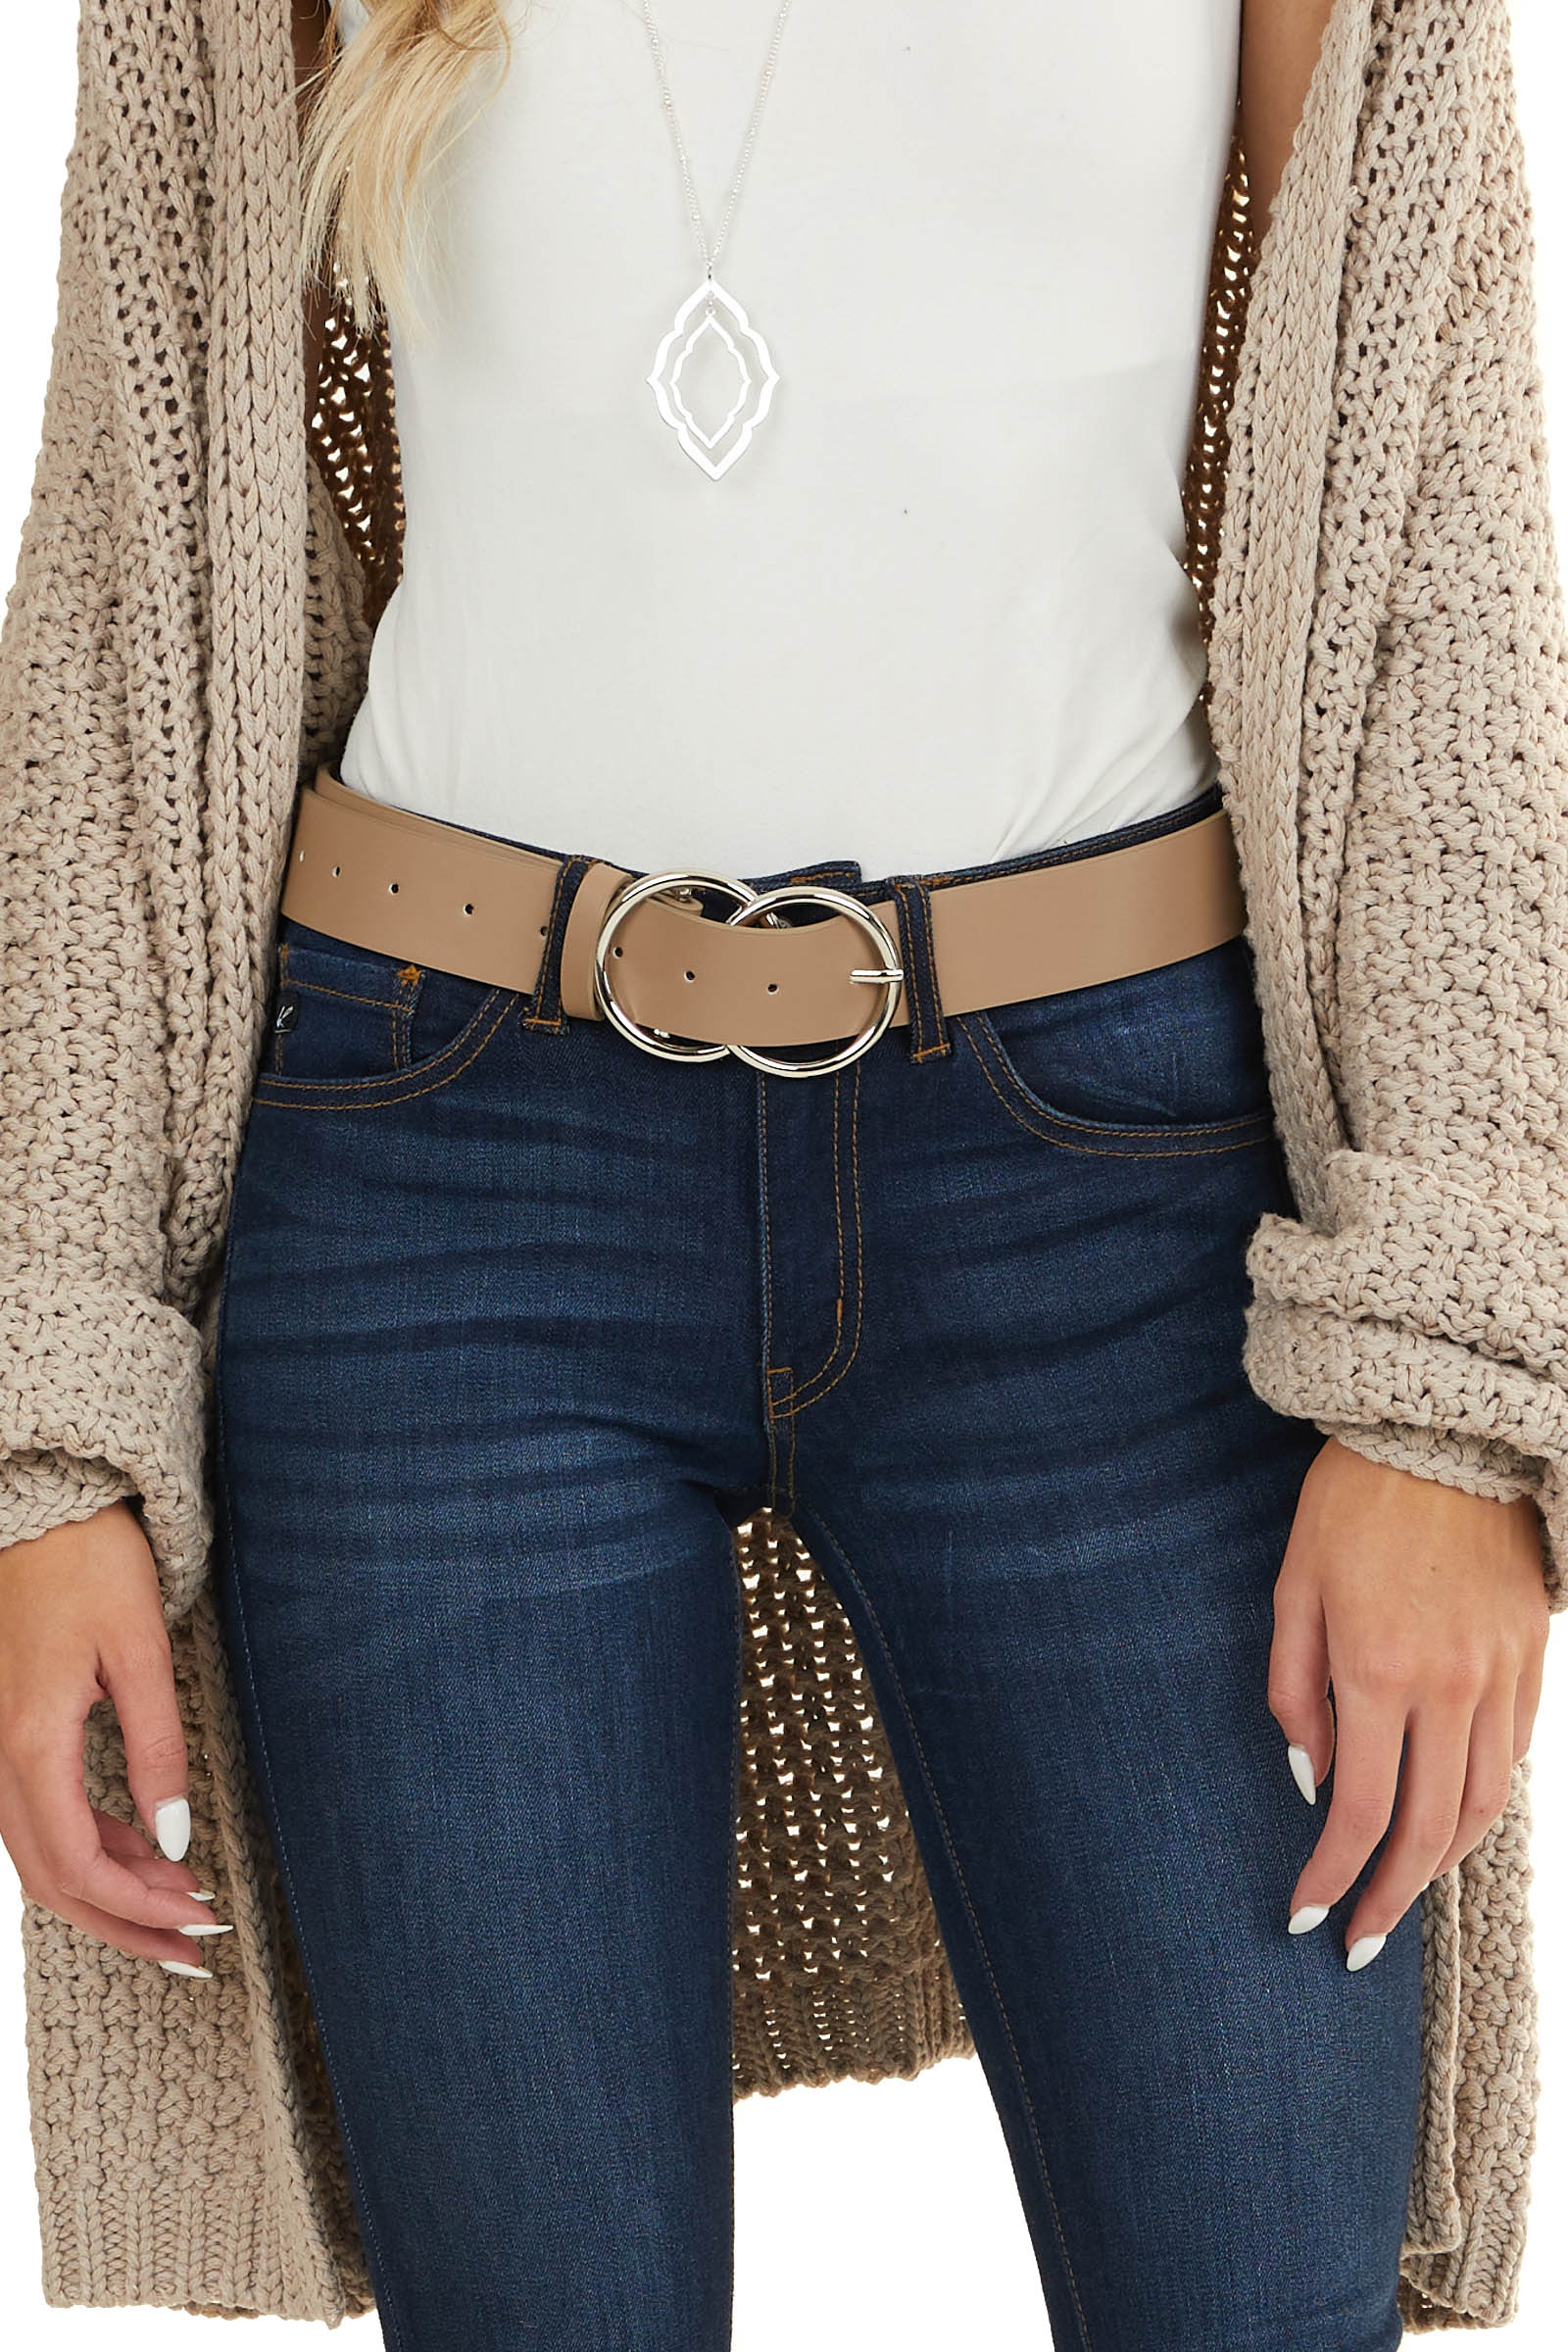 Taupe Faux Leather Belt with Silver Double Ring Buckle